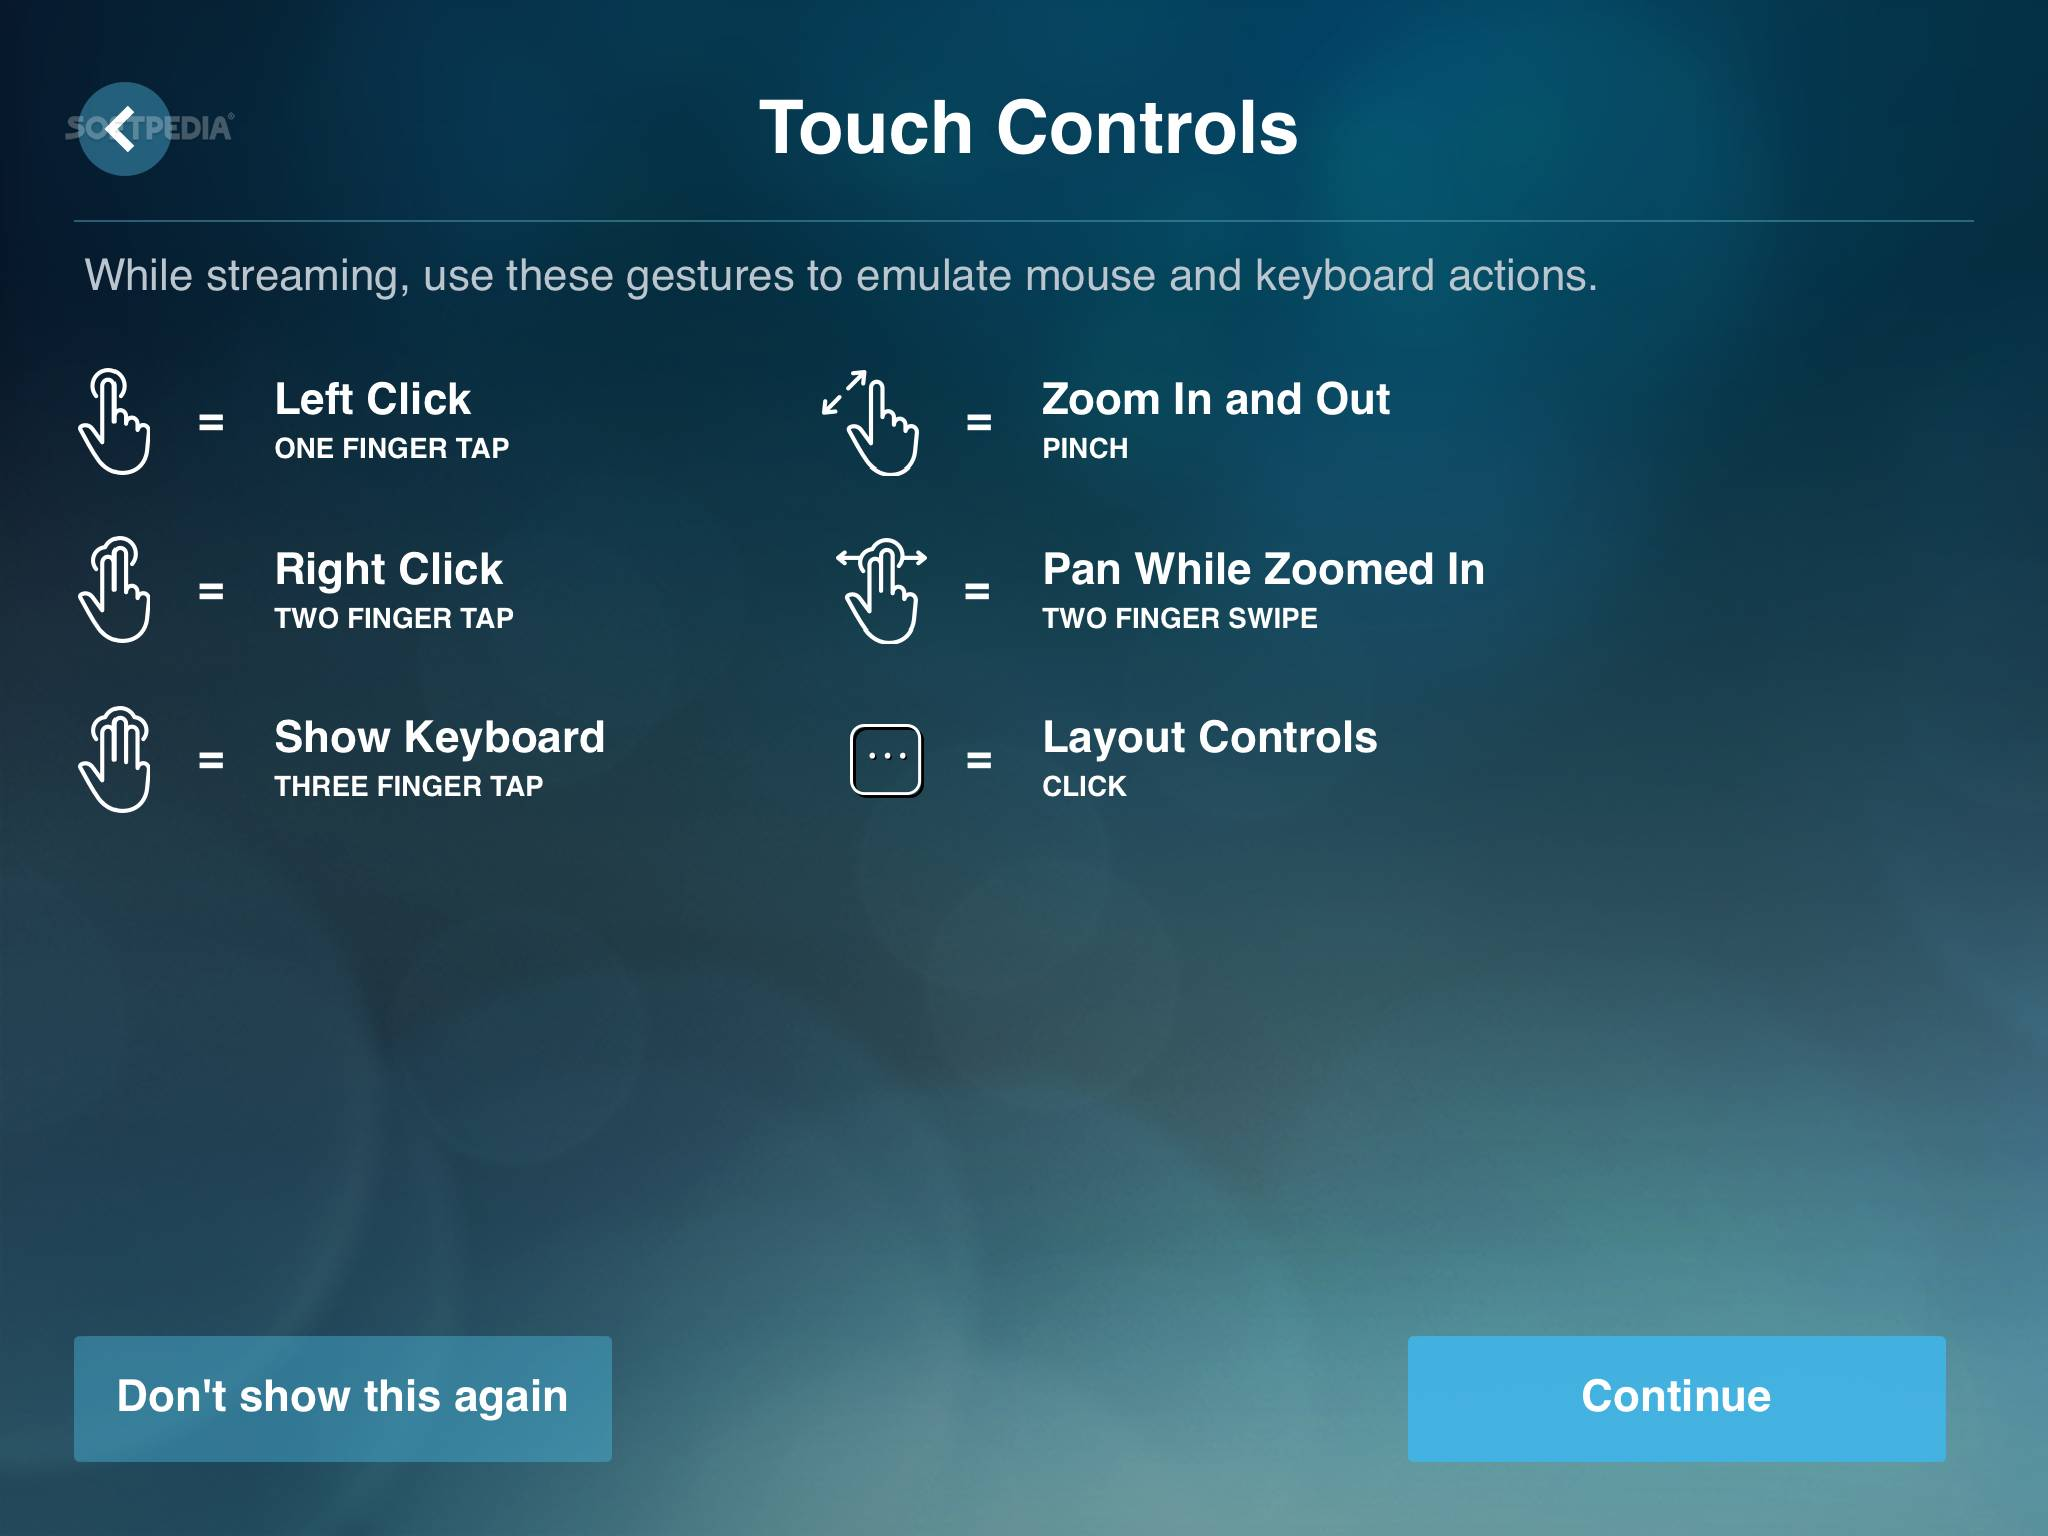 Valve Releases Steam Link App for iPhone, iPad and Apple TV, Here's